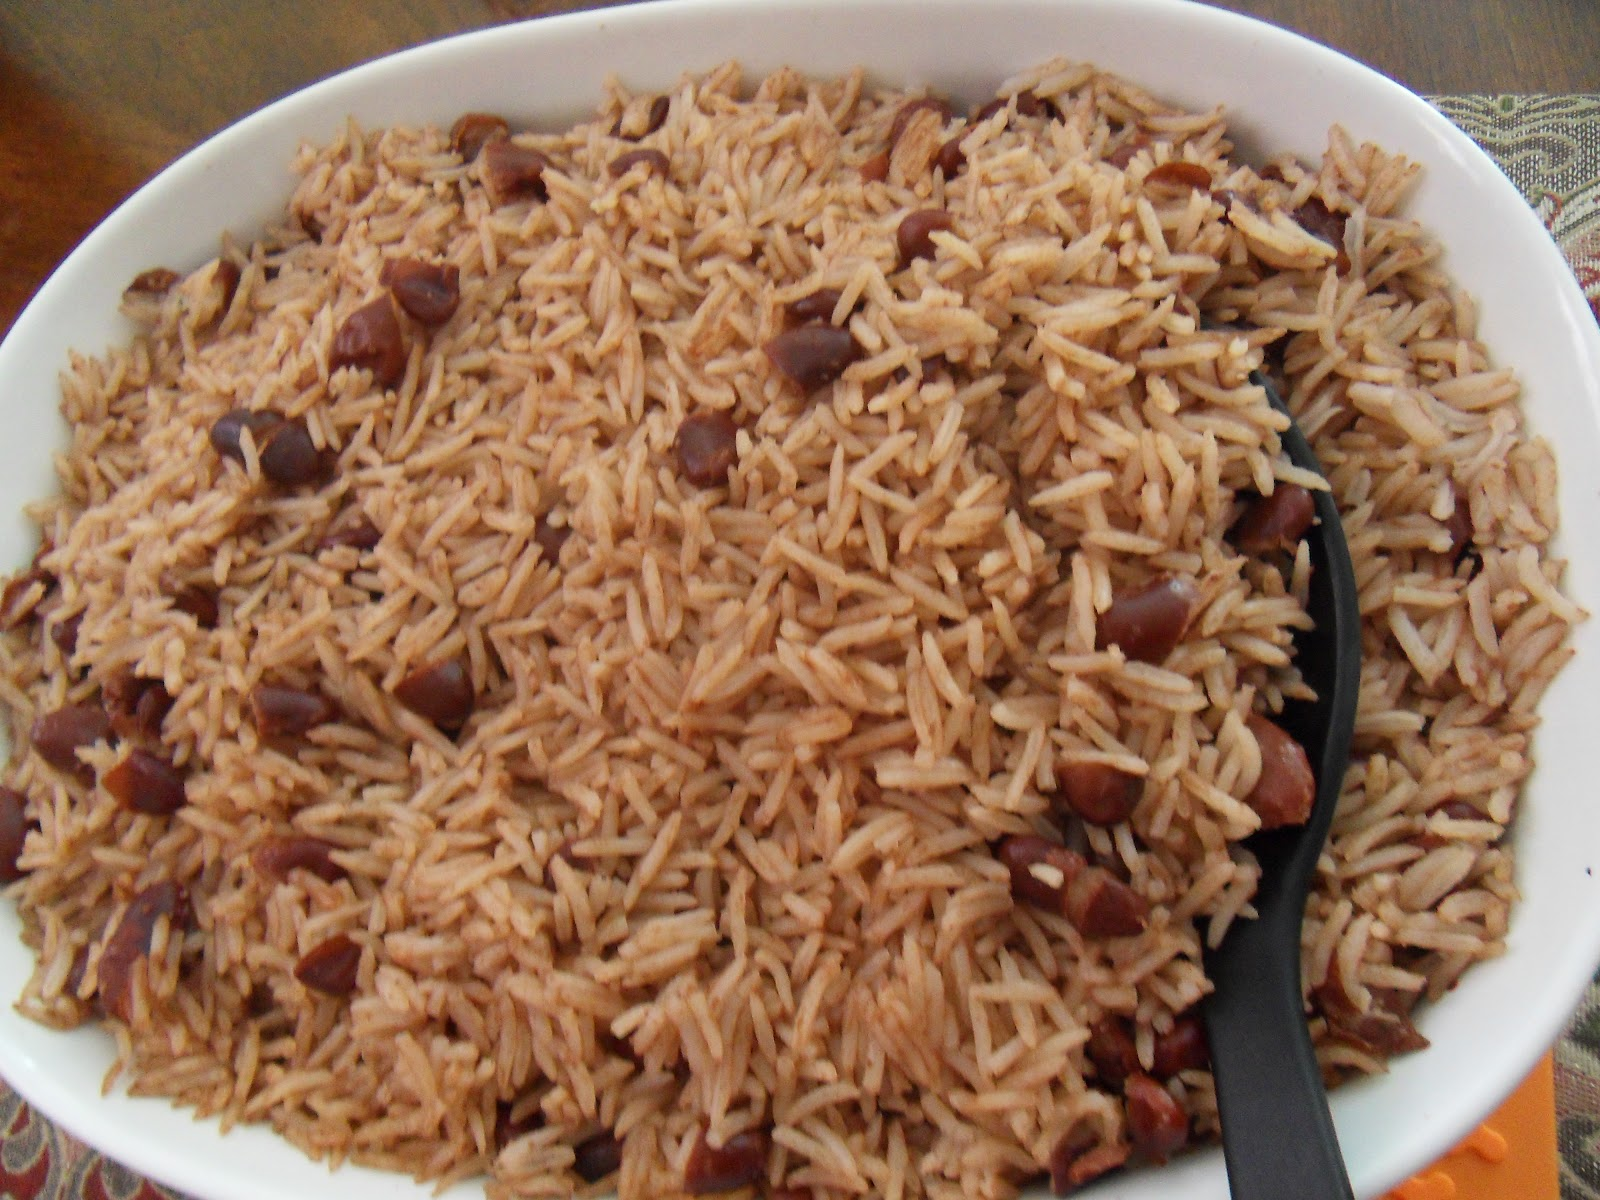 rice and peas 1 cup basmati rice 1 cup water